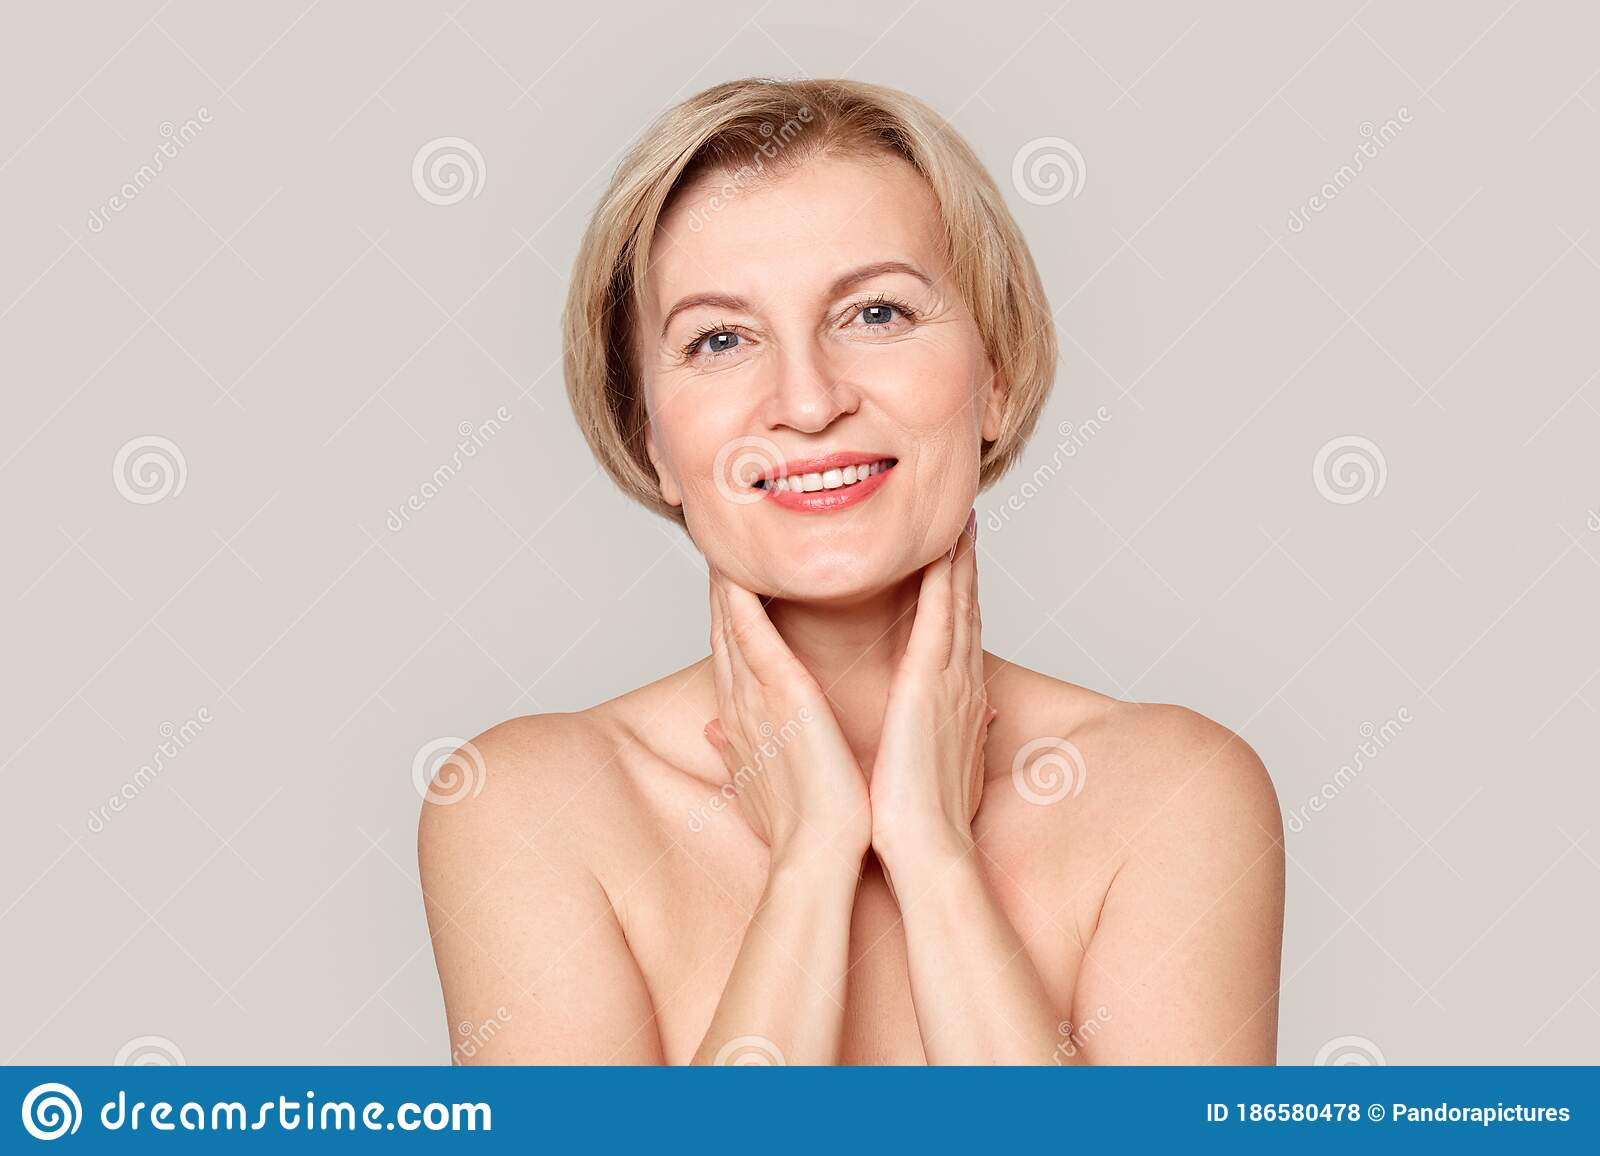 Mature women smiling nude Mature Woman Smiling Touching Neck Photos Free Royalty Free Stock Photos From Dreamstime